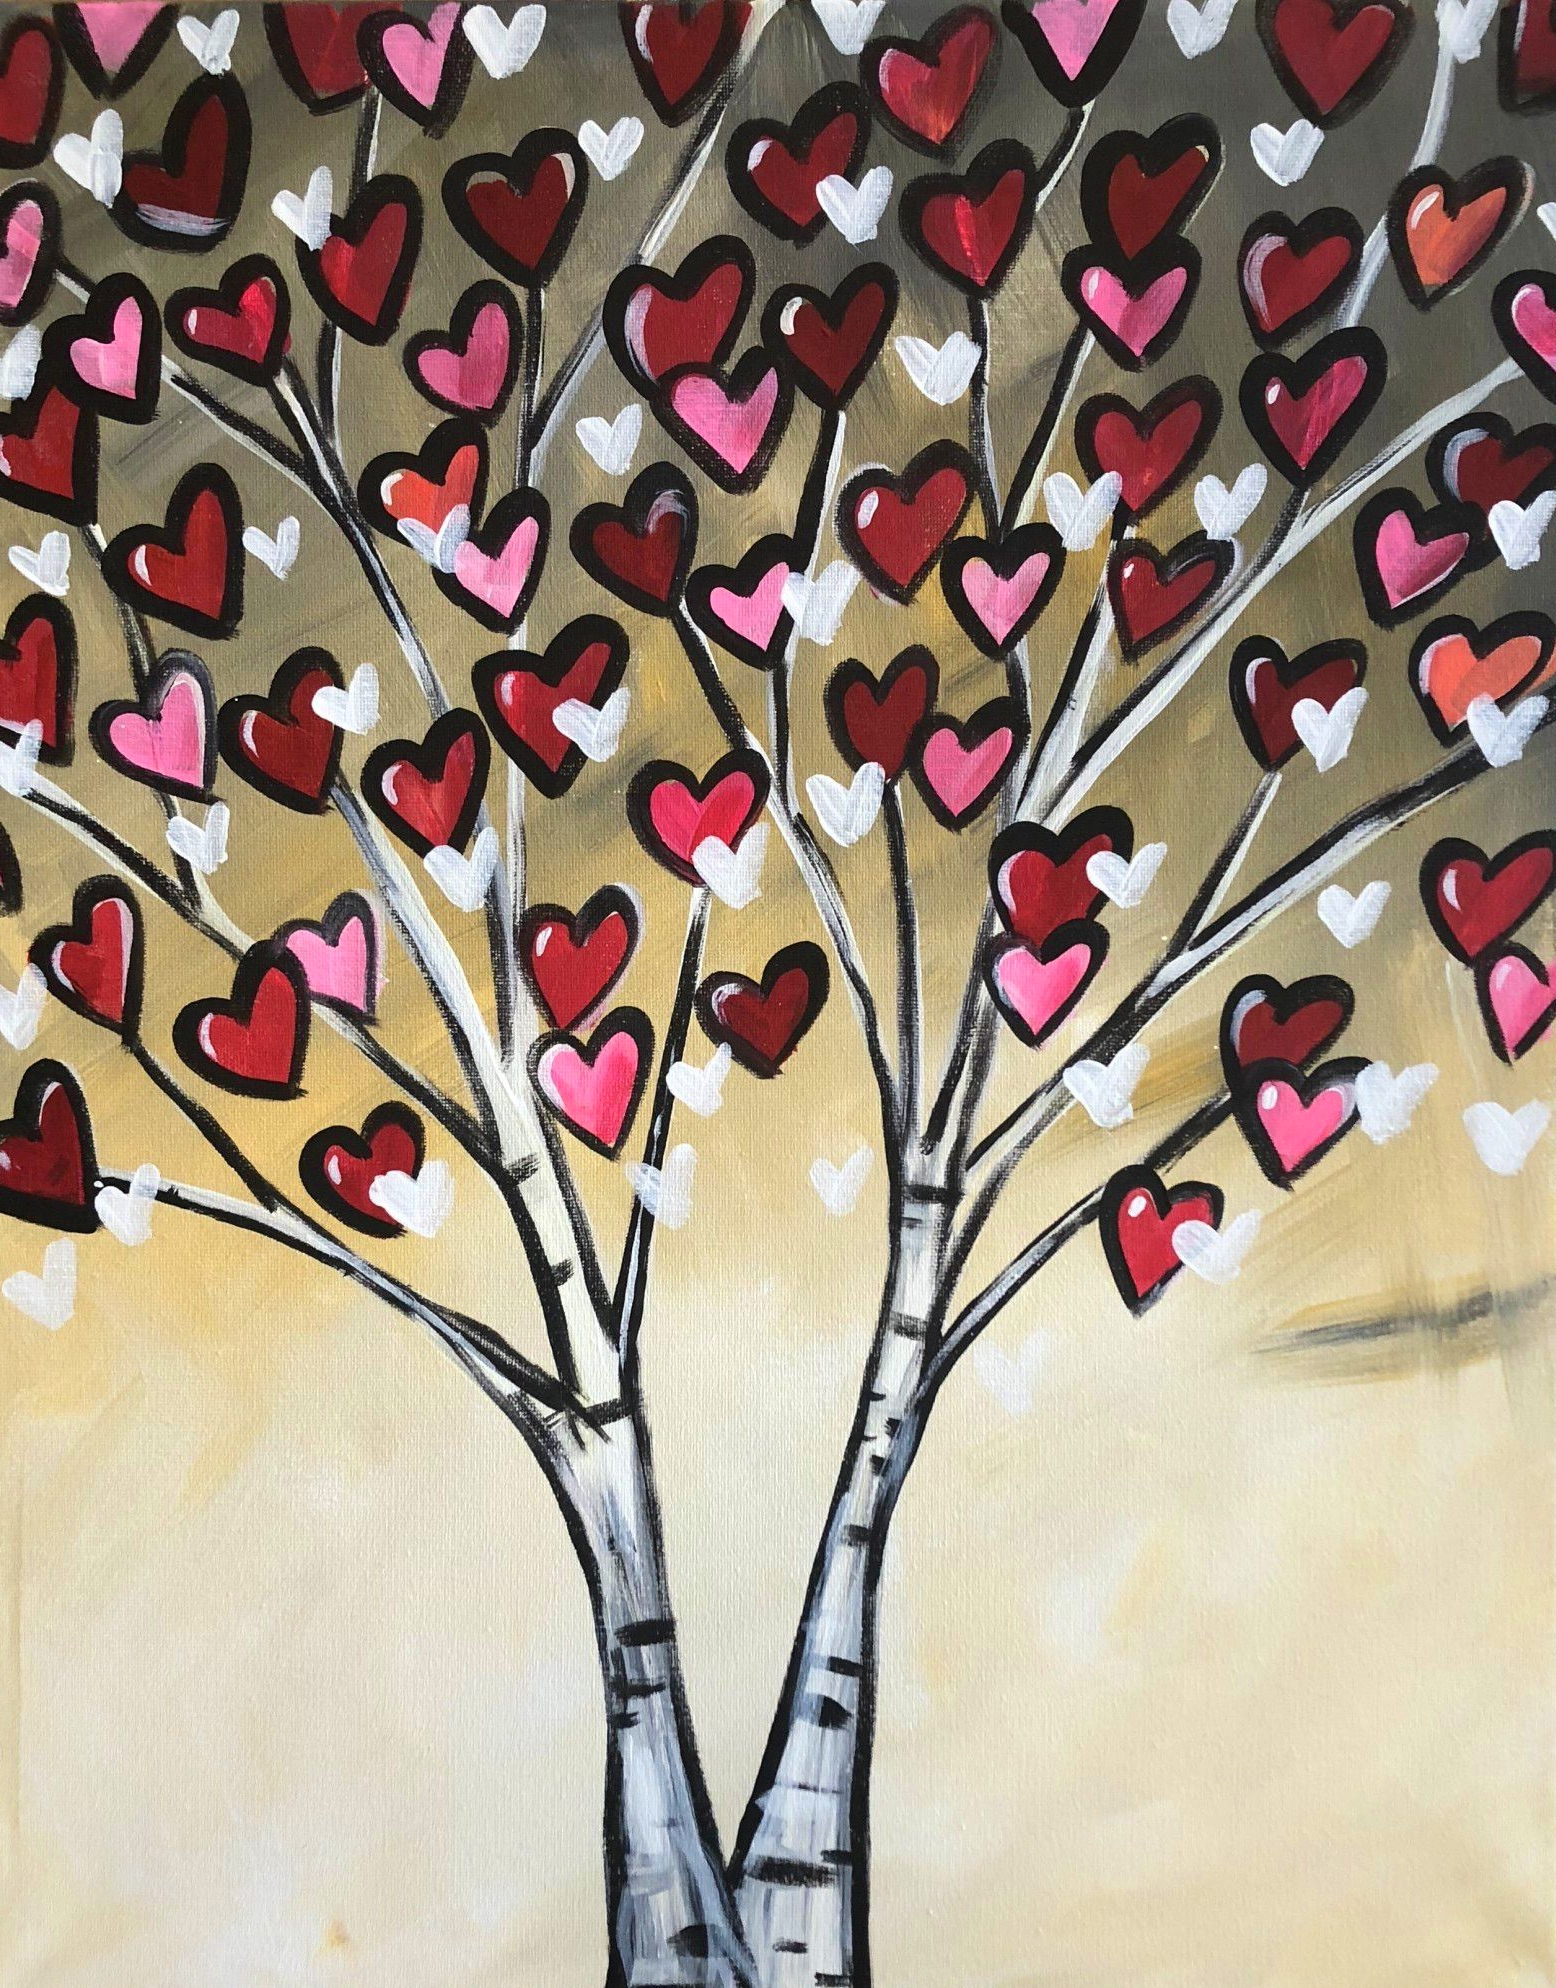 Heart Birch Tree - Wine-down Wednesday!